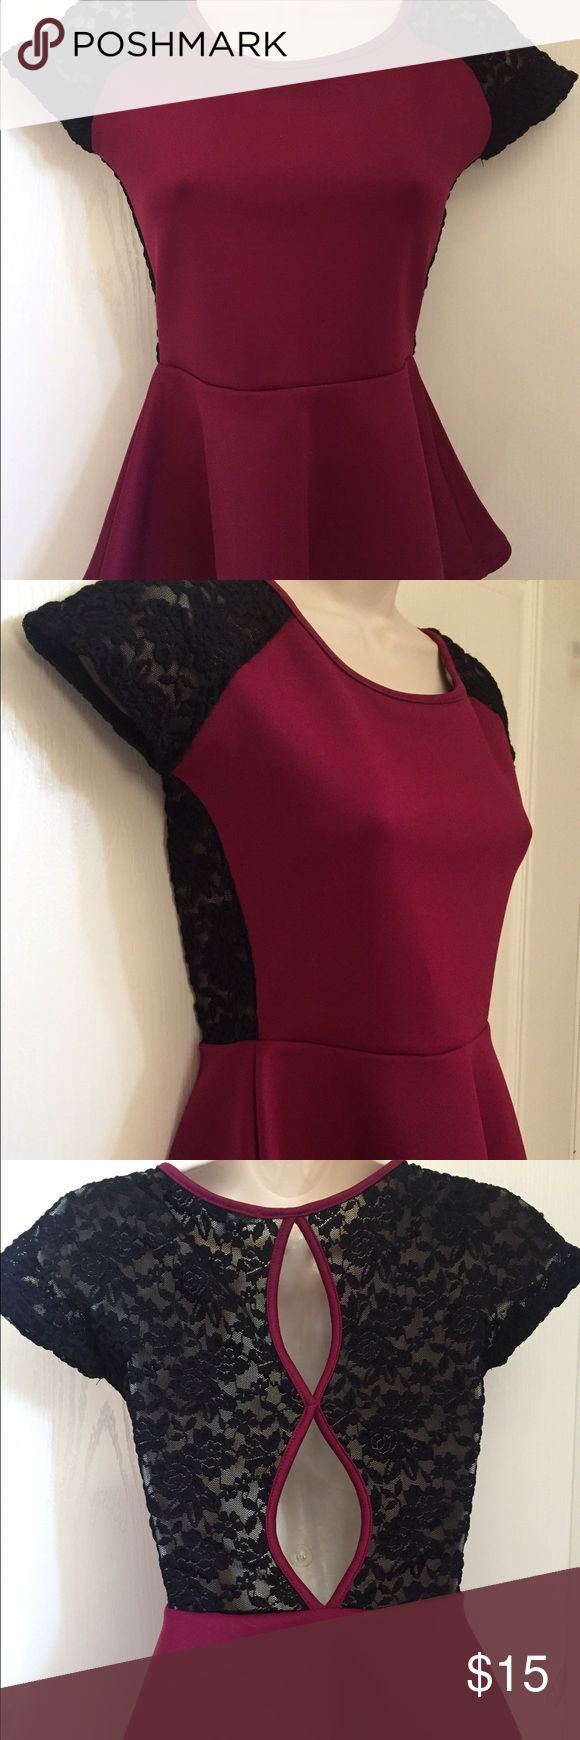 Selling this Charlotte Russe Peplum Top Plum w/ black lace in my Poshmark closet! My username is: sheajordan02. #shopmycloset #poshmark #fashion #shopping #style #forsale #Charlotte Russe #Tops